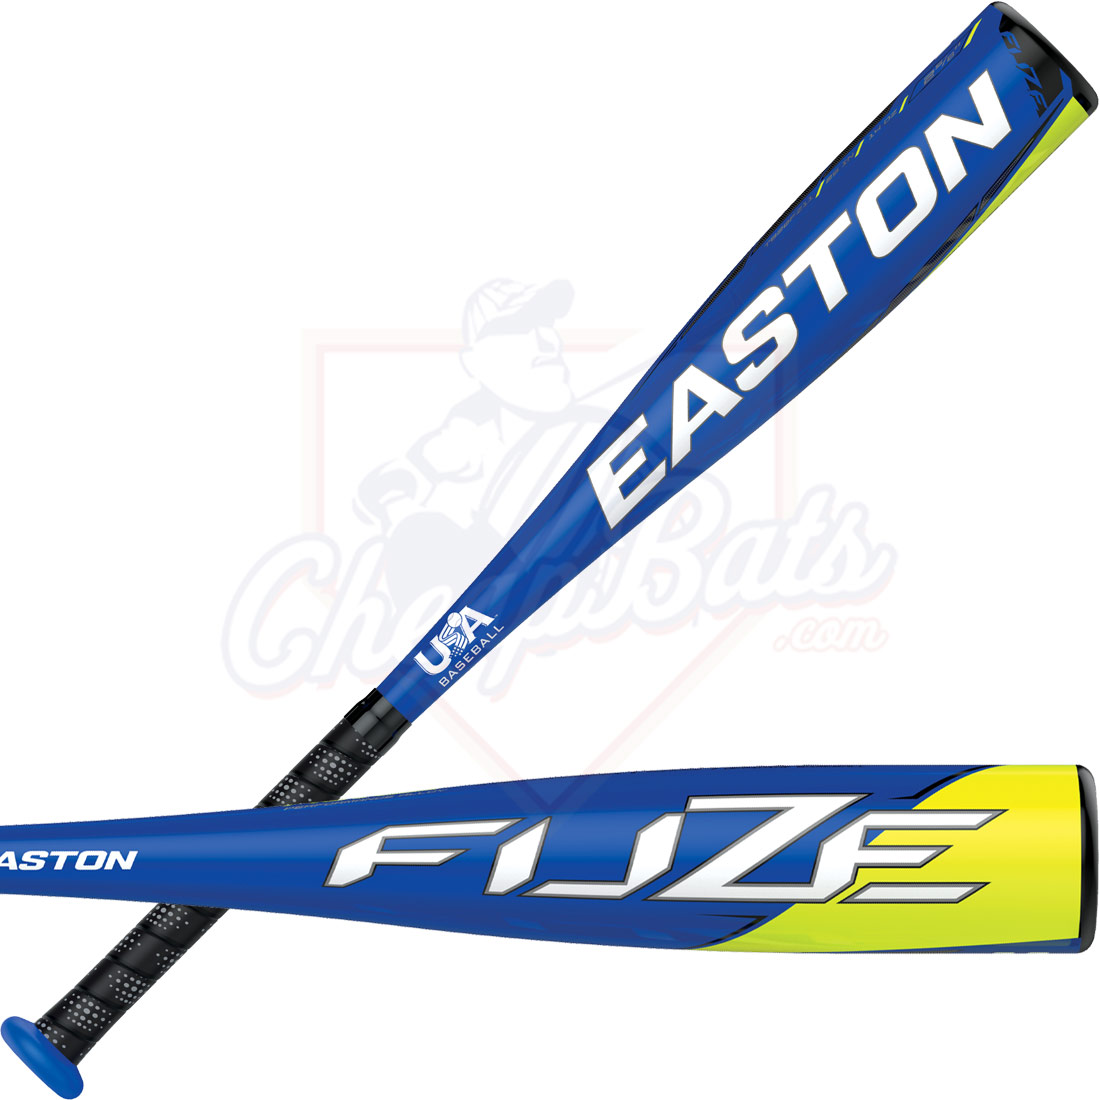 2020 Easton Fuze Youth USA Tee Ball Bat -11oz TB20FZ11